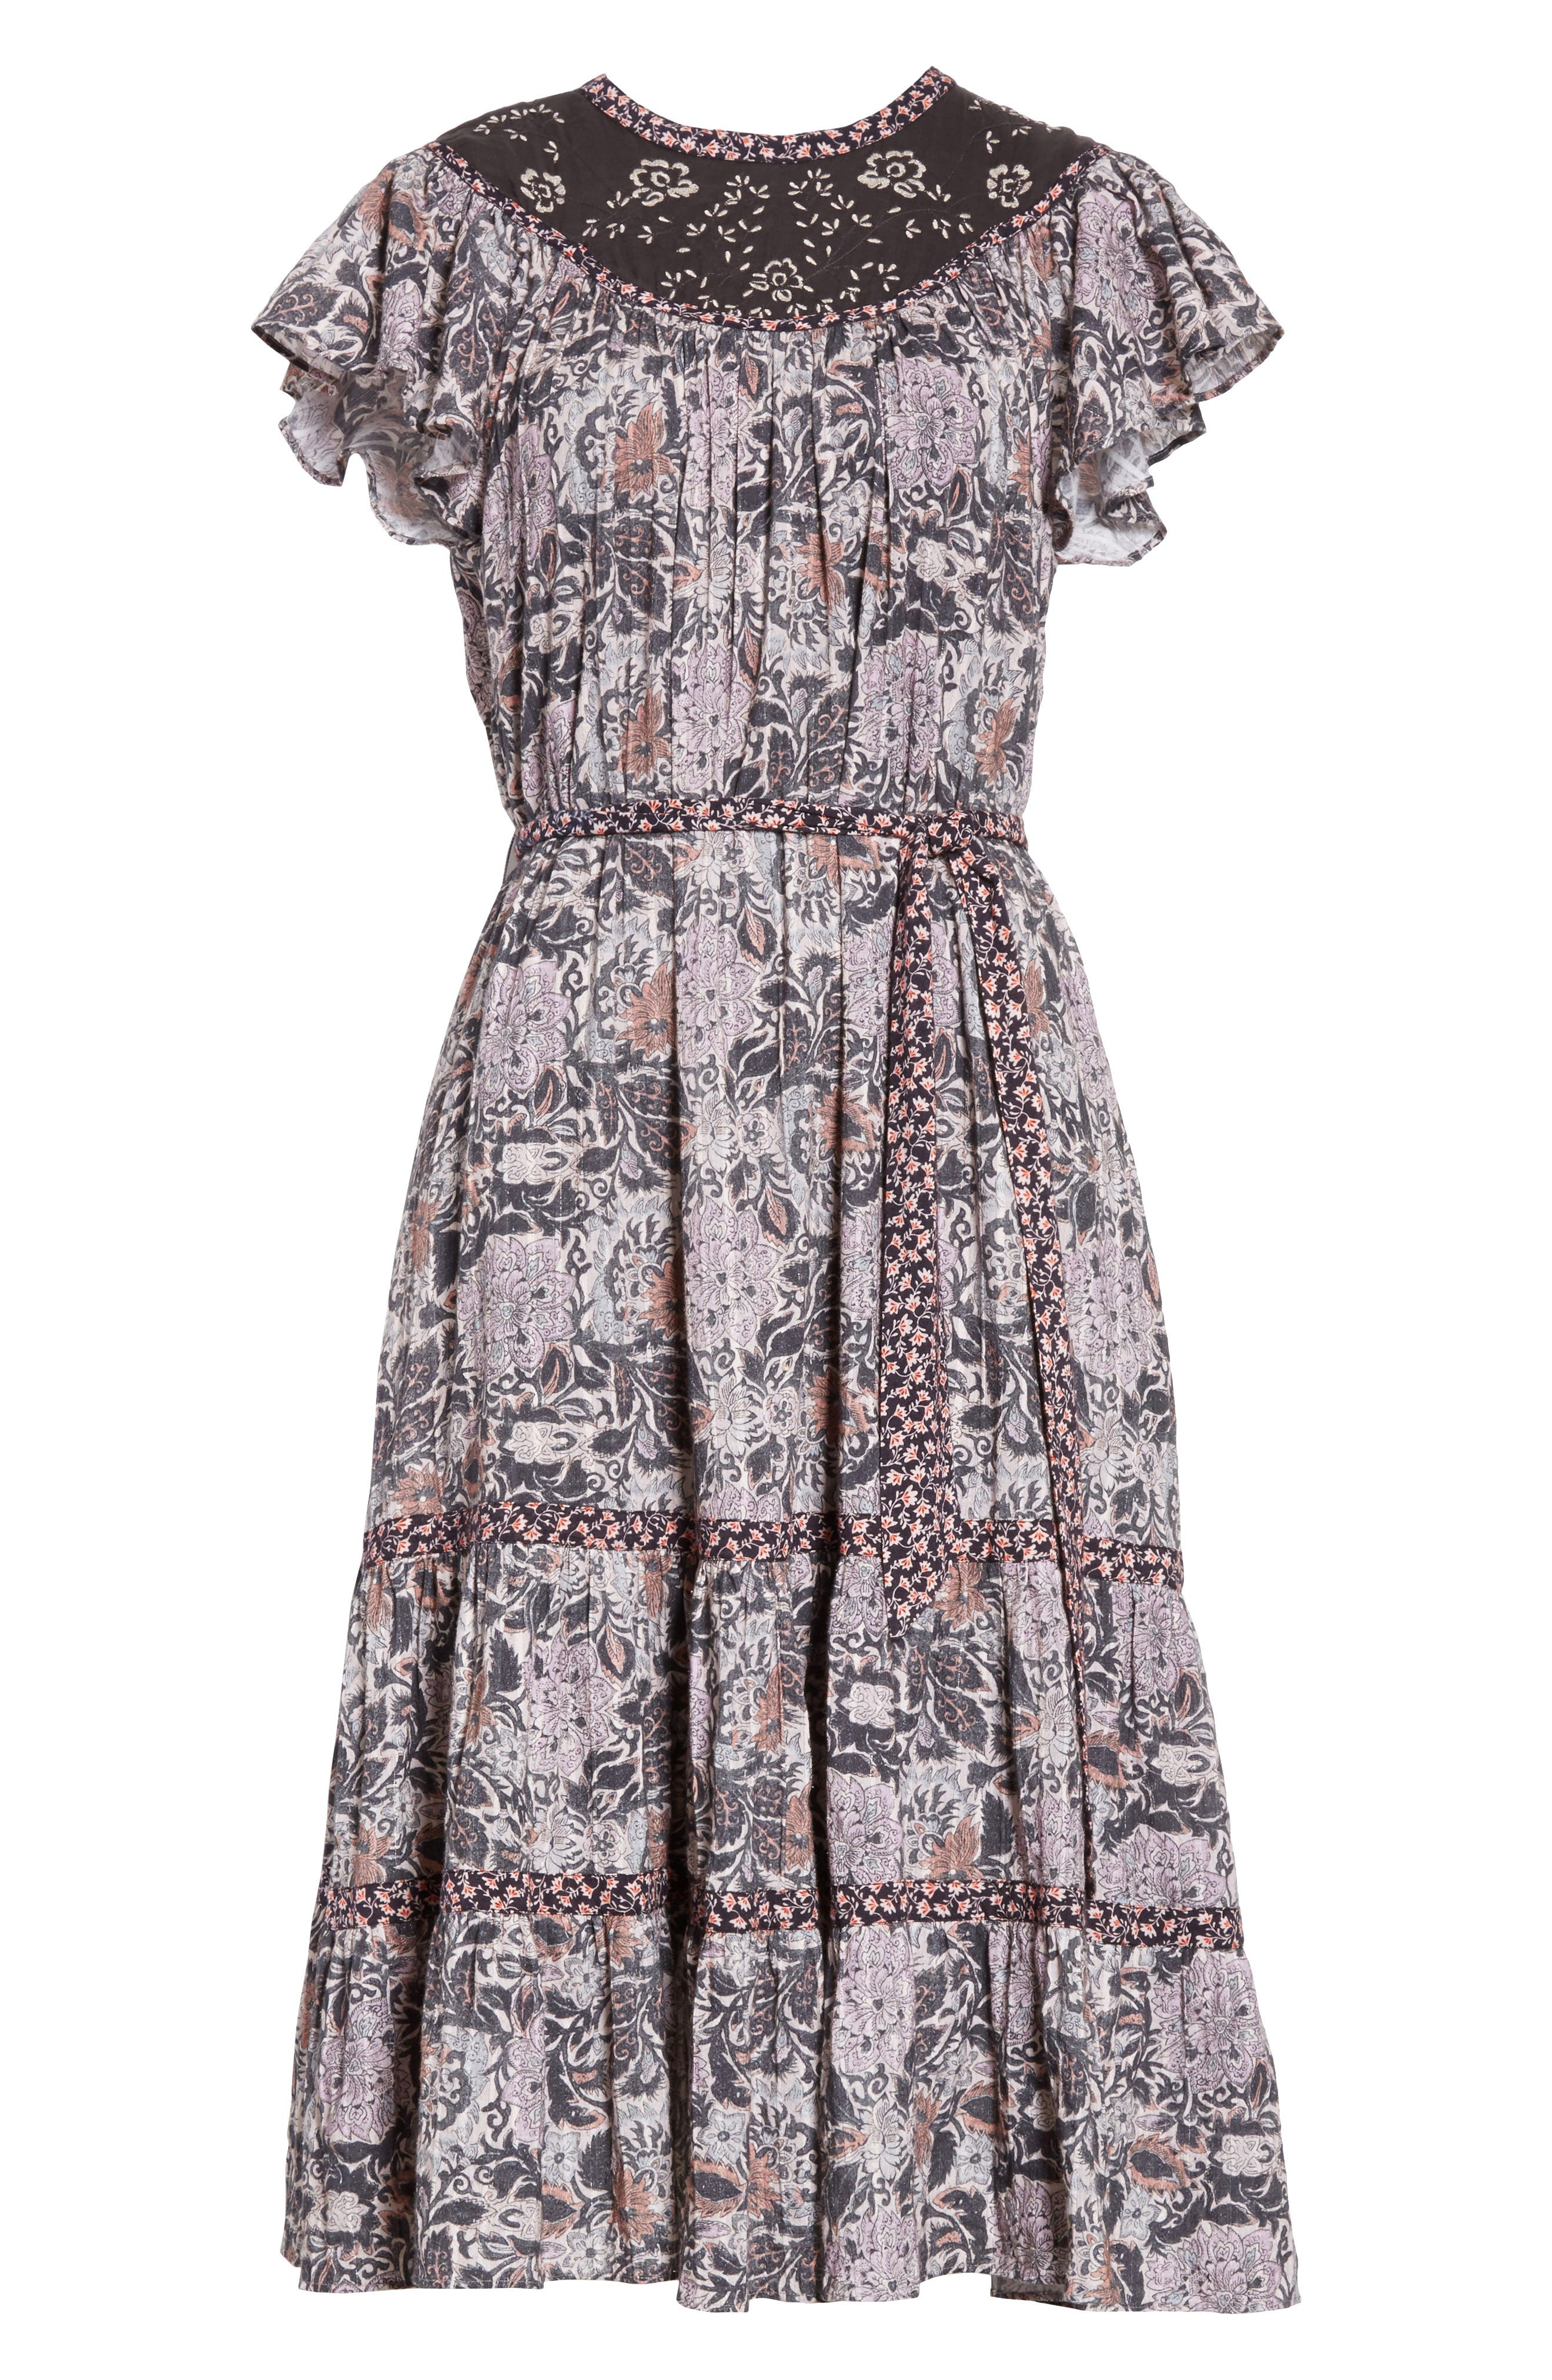 Indochine Embroidered Floral Dress,                             Alternate thumbnail 6, color,                             017